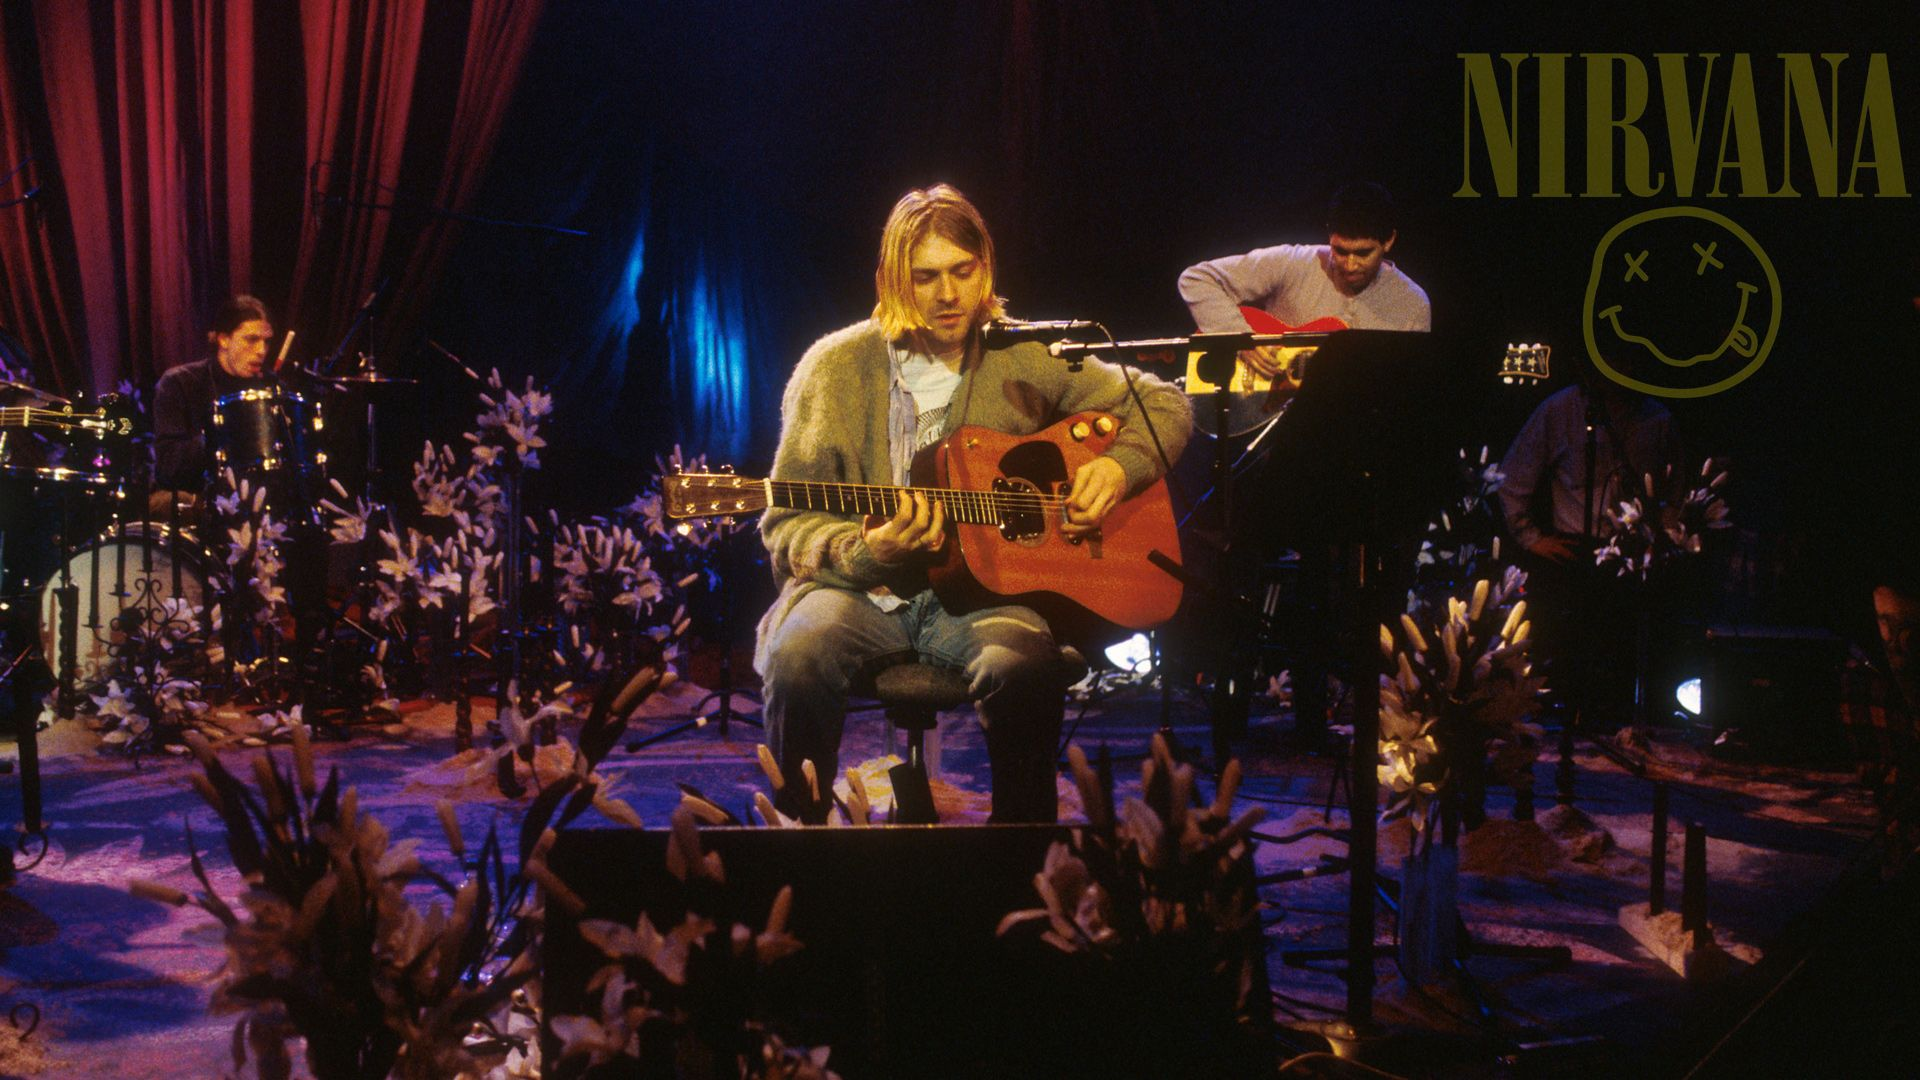 Nirvana Unplugged Wallpaper Unplugged Nirvana | Top